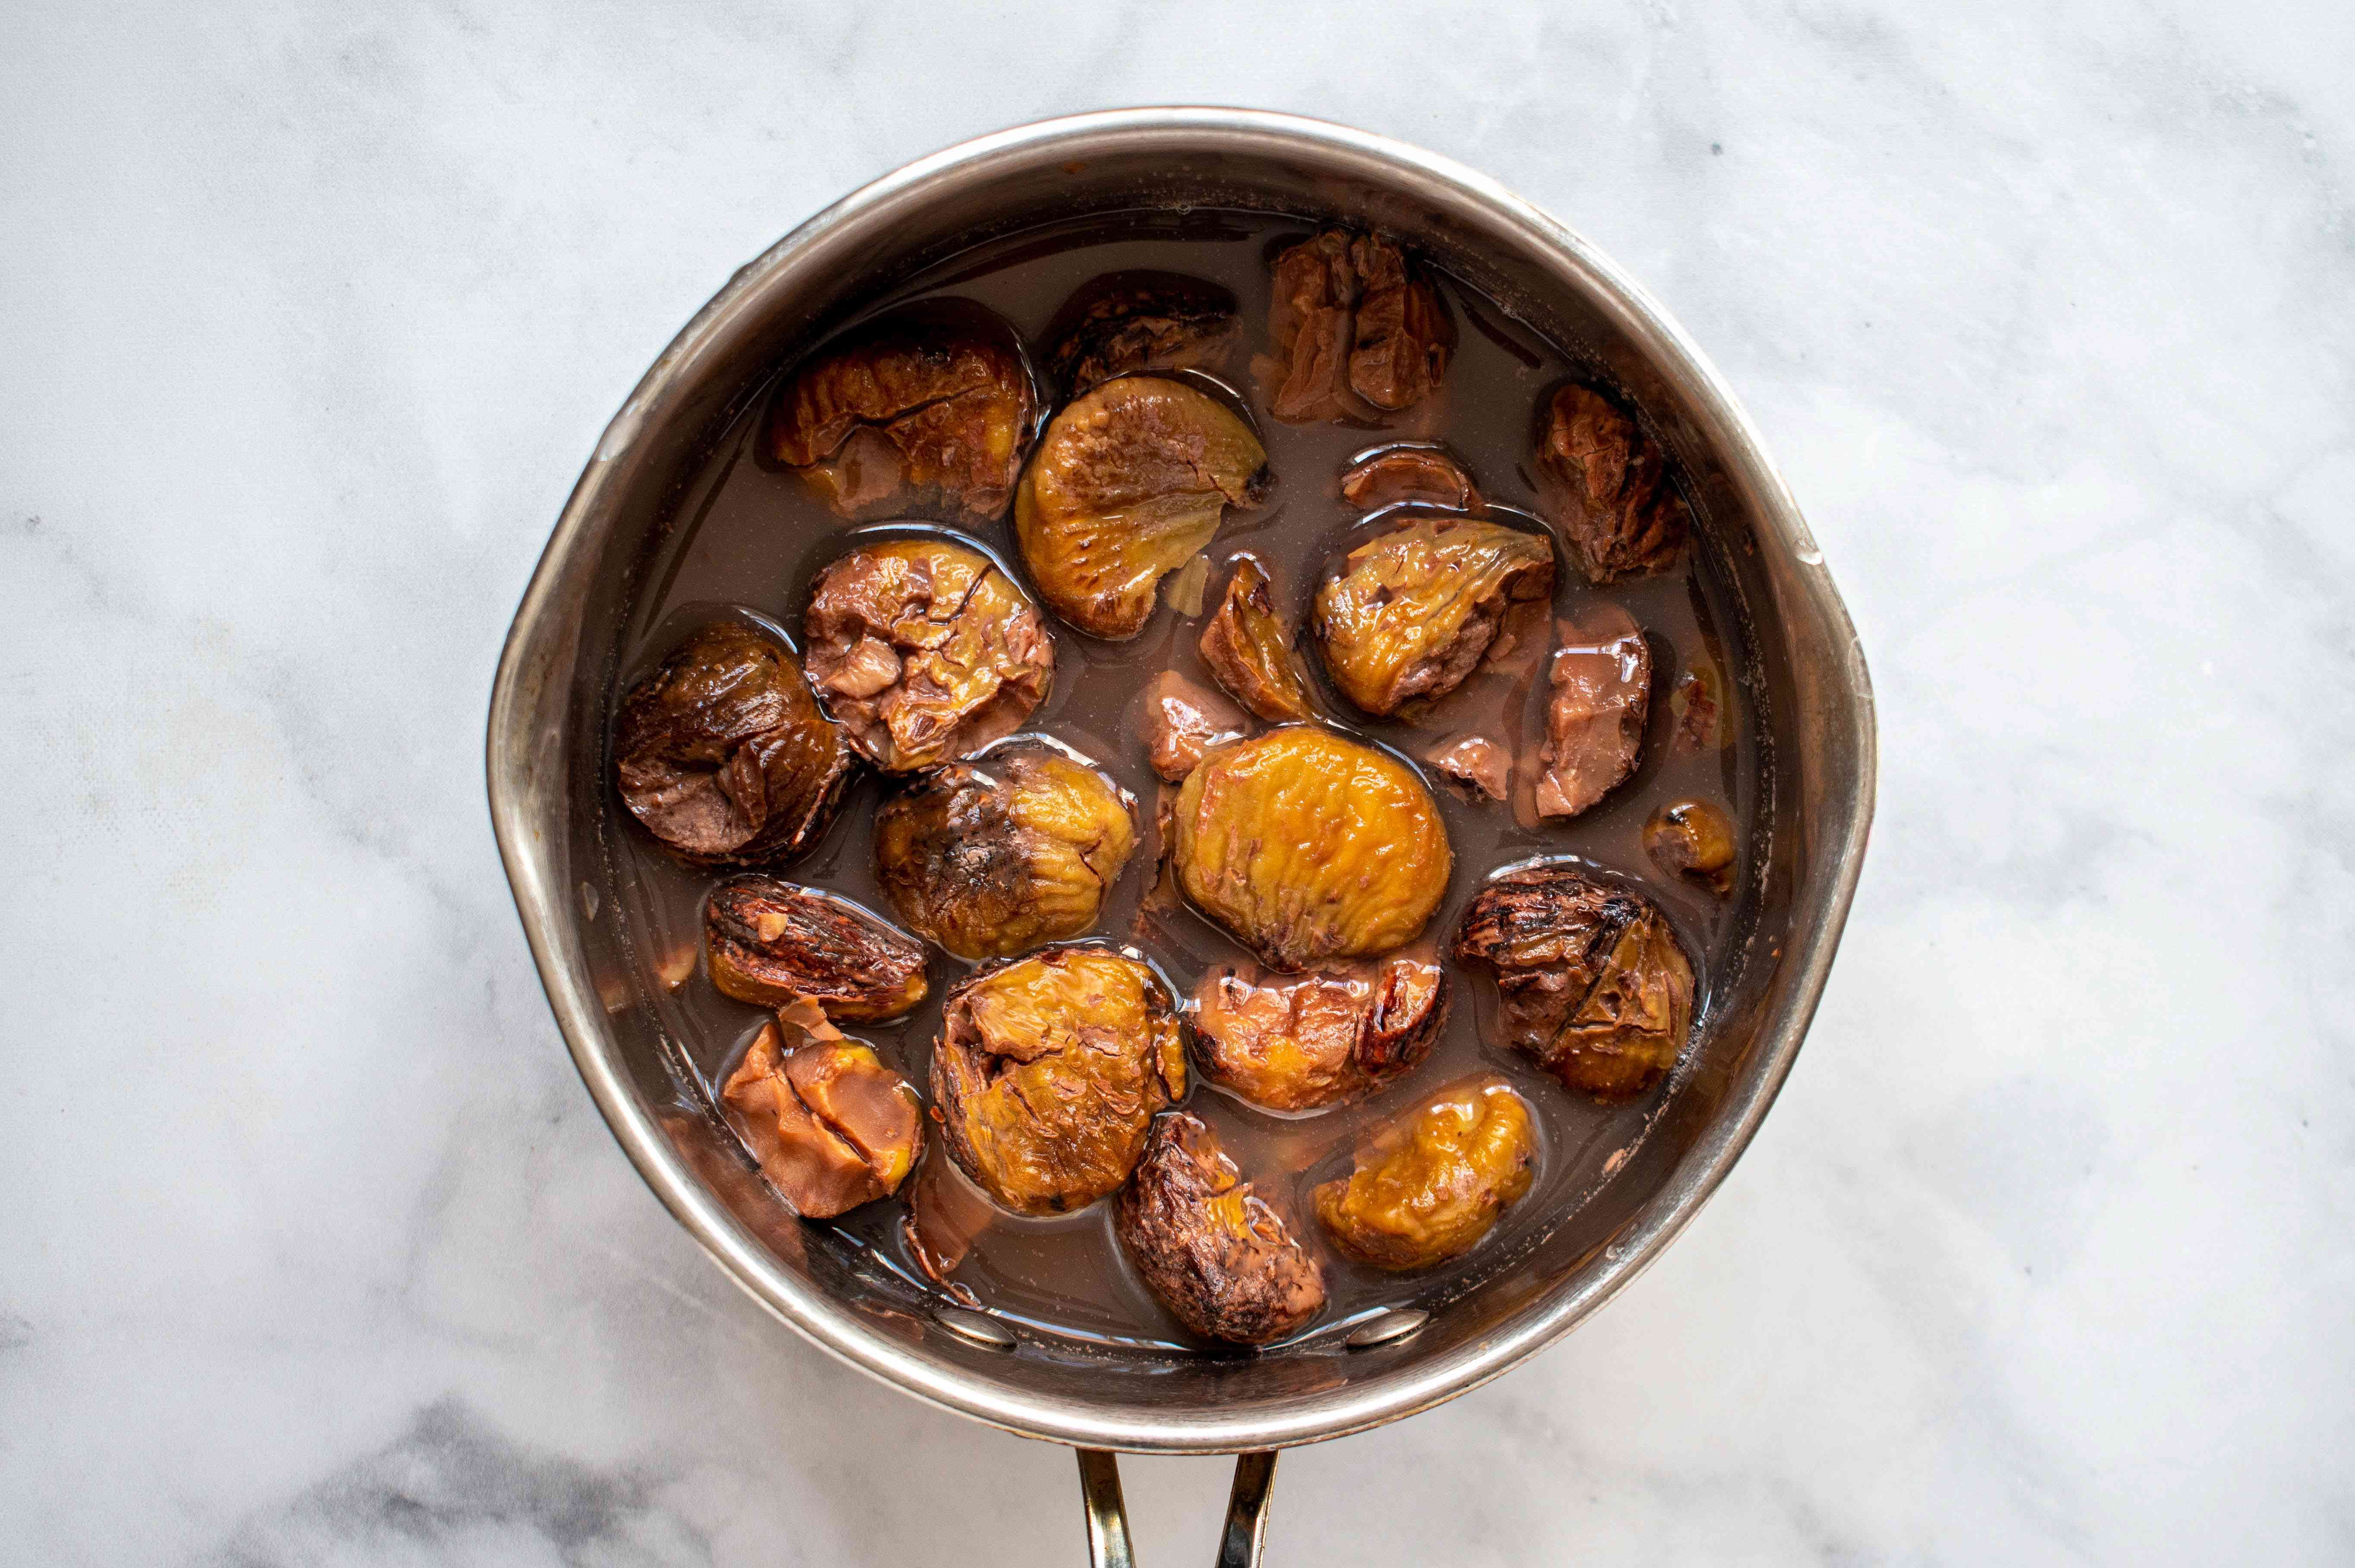 chestnuts in a saucepan brought to a boil